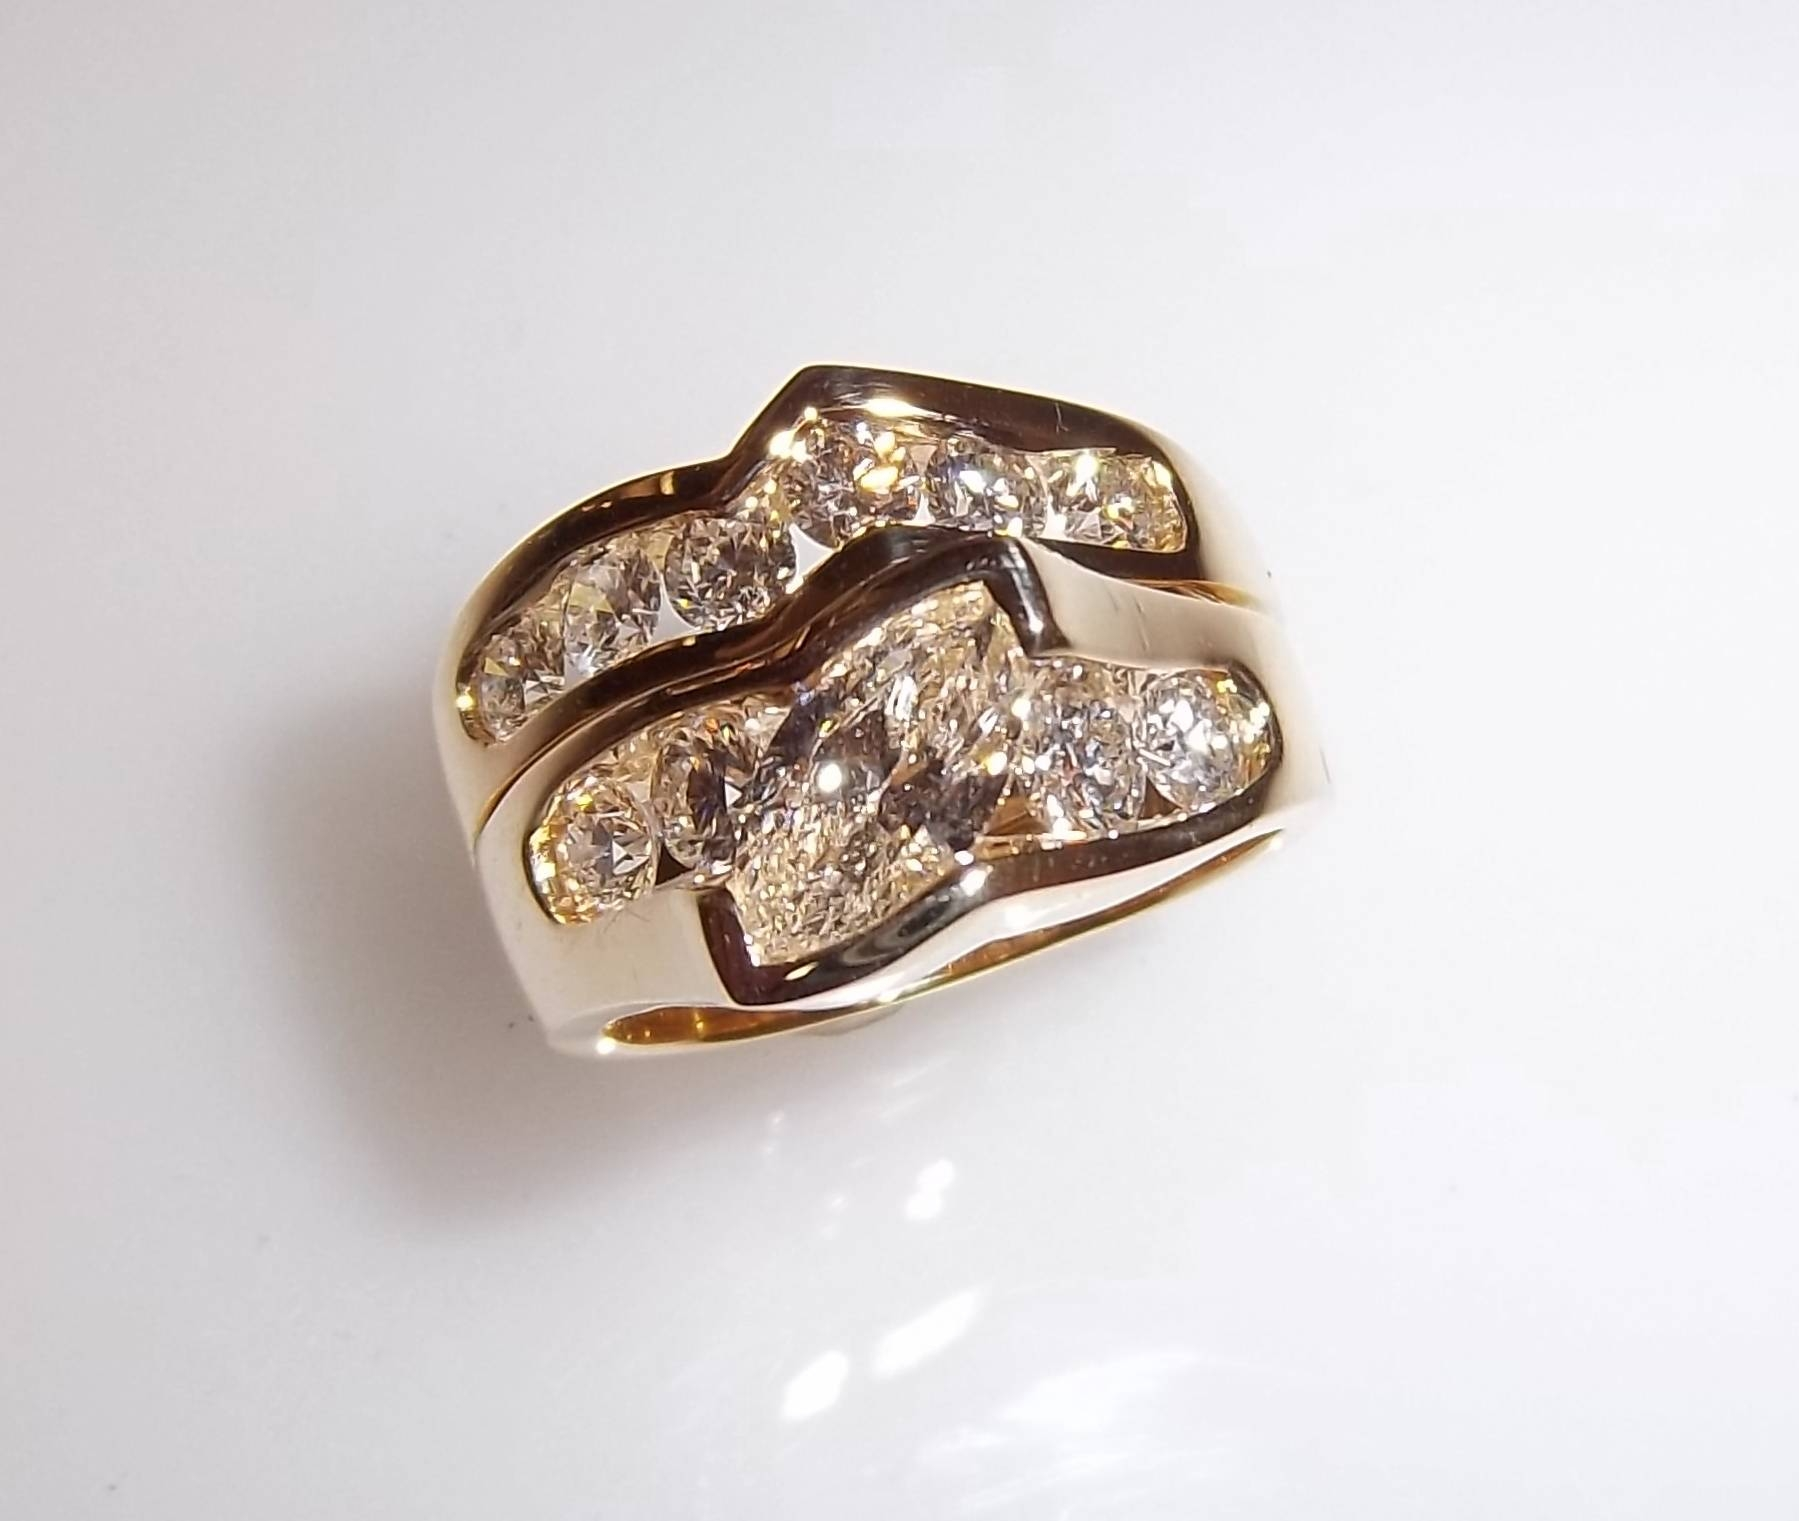 Wedding Anniversary Rings For Her | Wedding Ideas With Current Anniversary Rings For Her (View 4 of 25)